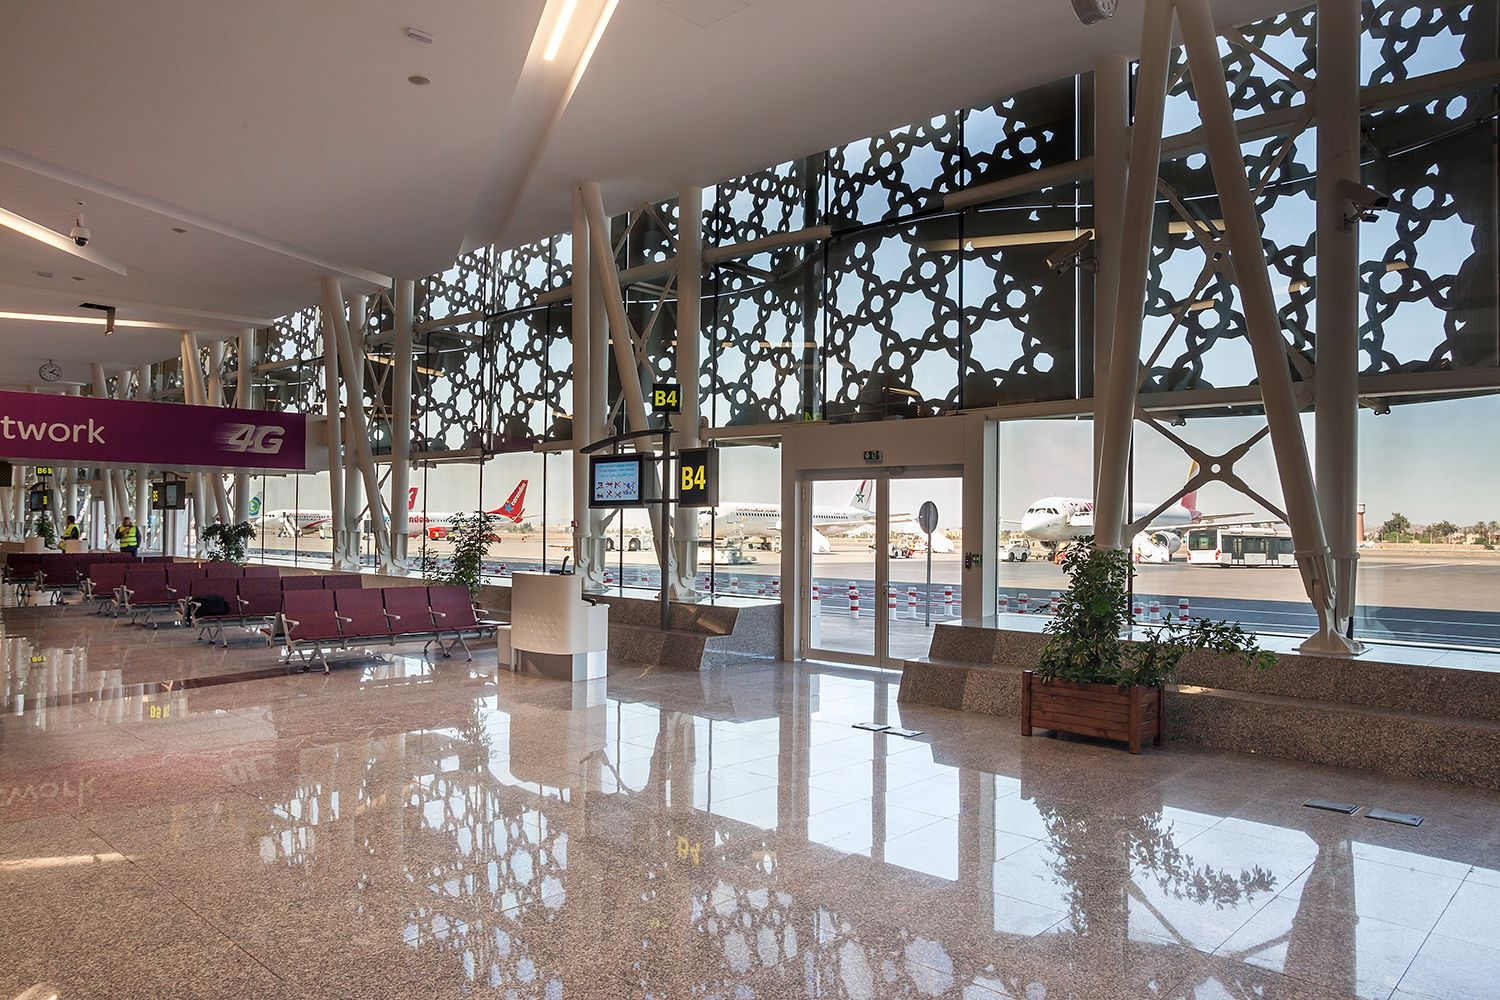 New terminal at Marrakech Airport in Morocco